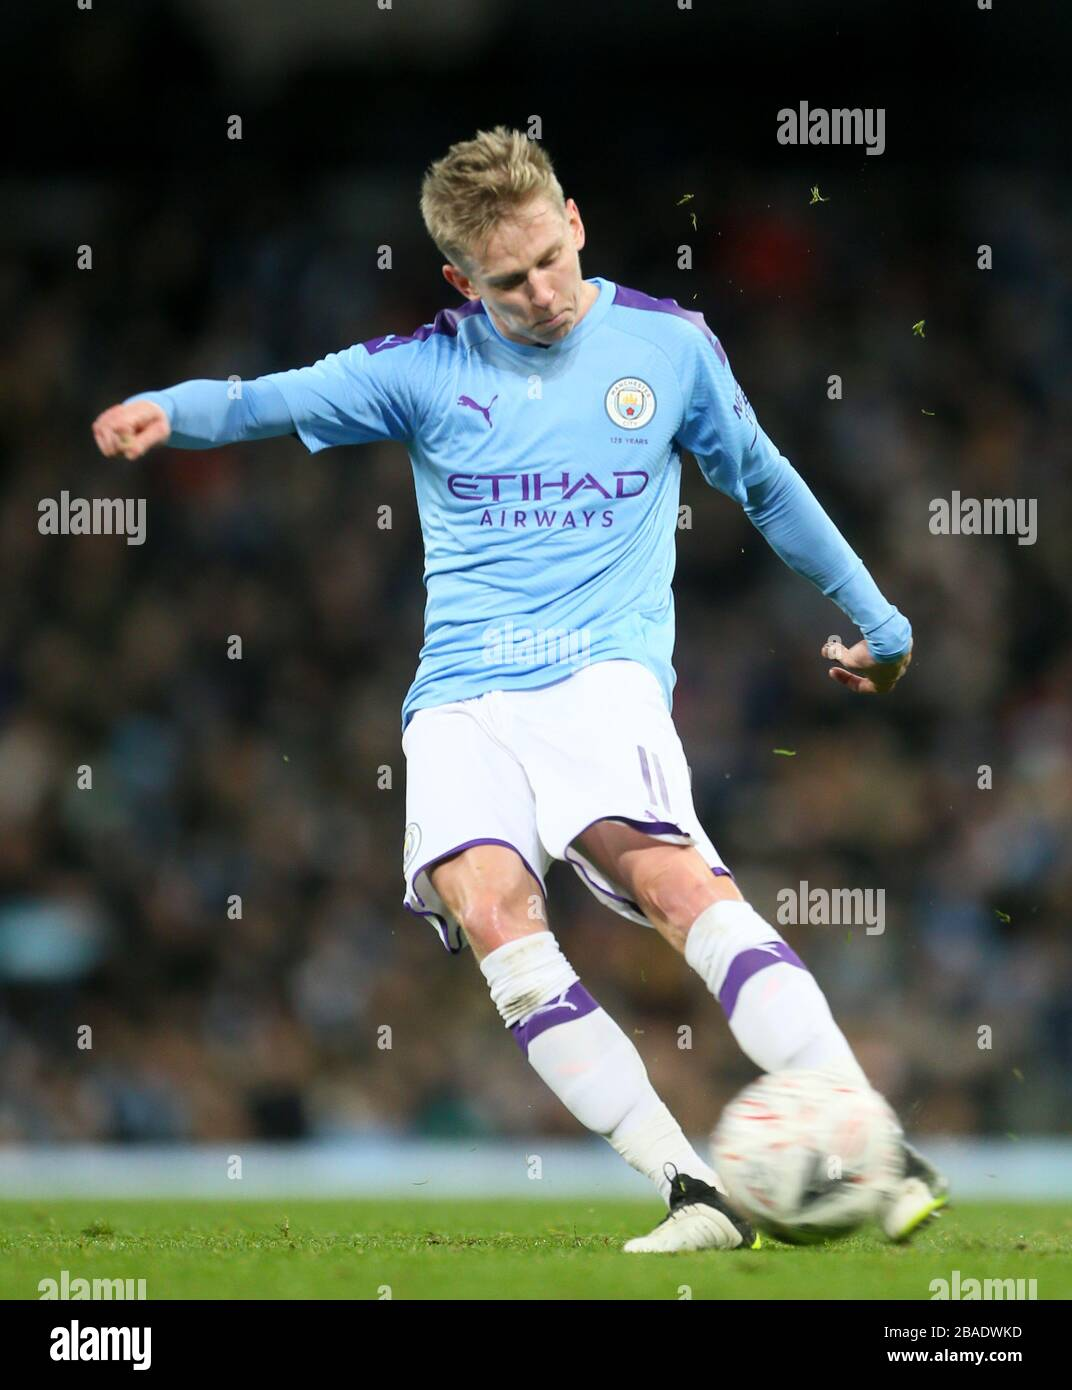 Manchester City's Oleksandr Zinchenko scores his side's first goal of the  game Stock Photo - Alamy